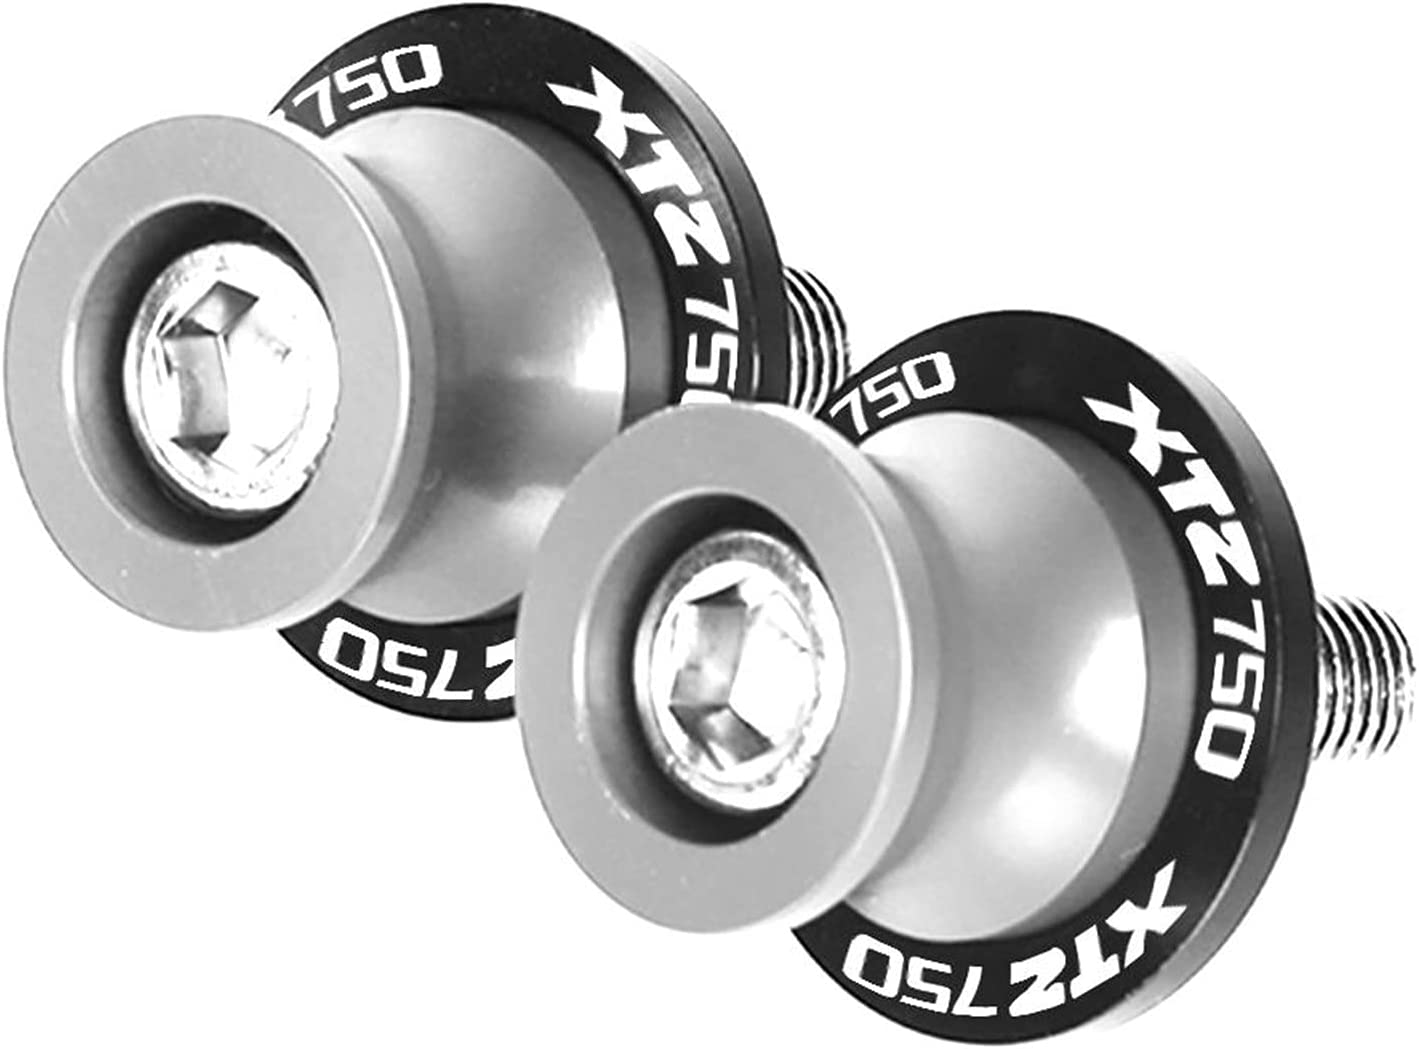 Motorcycle Swing Finally popular Sale Special Price brand Arm Spool For Yamah-a XTZ750 Motorcyc 1989-1996